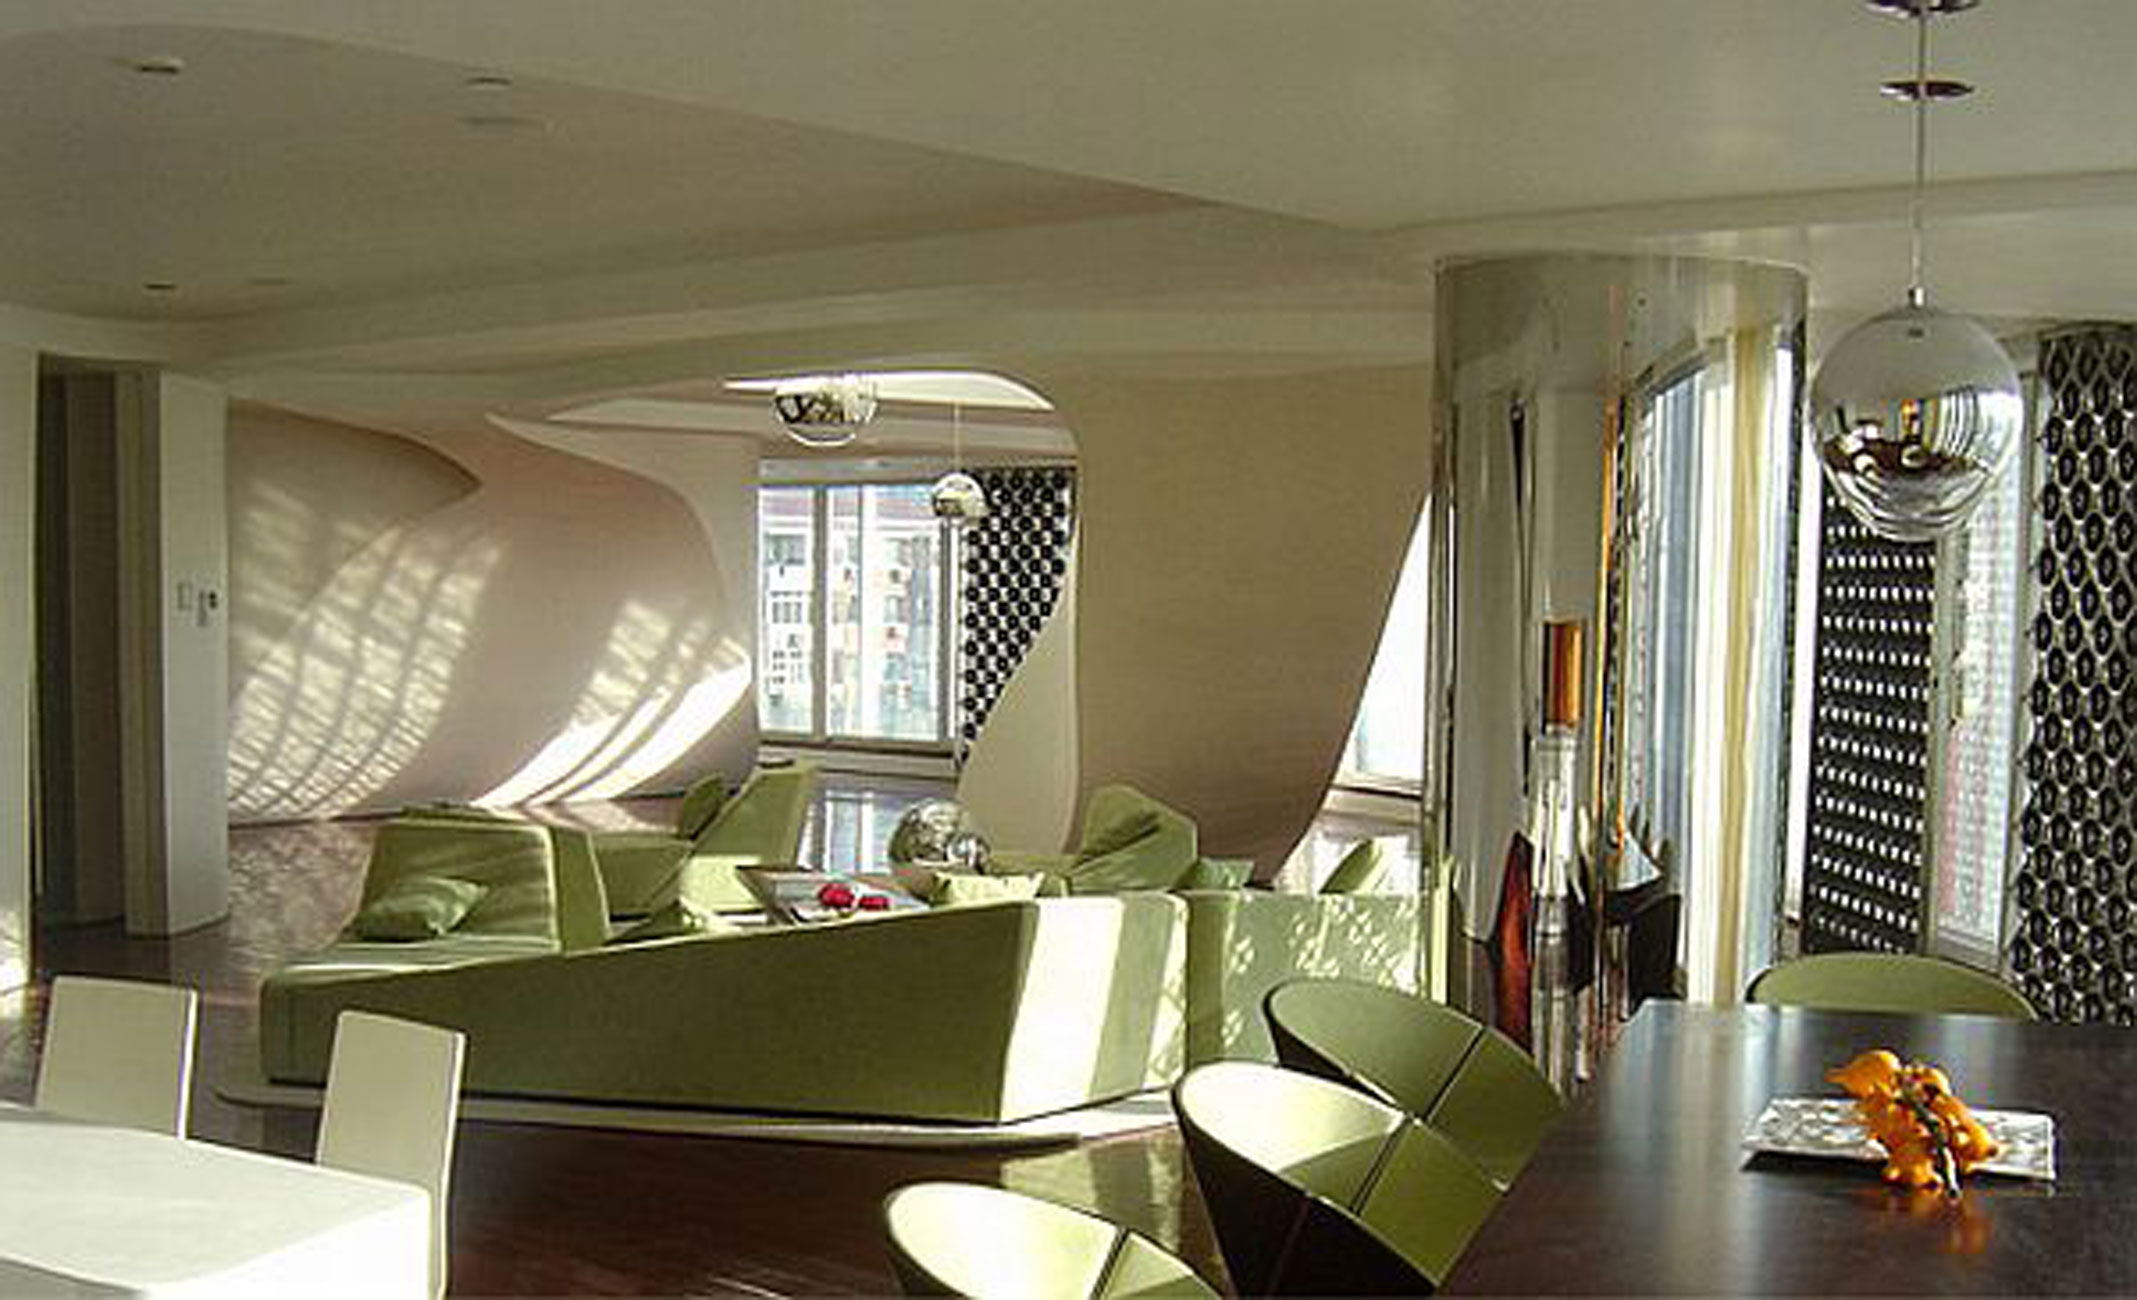 Beijing Chateau Bold Design And Strong Color Residence From Graft Livingroom Viahouse Com